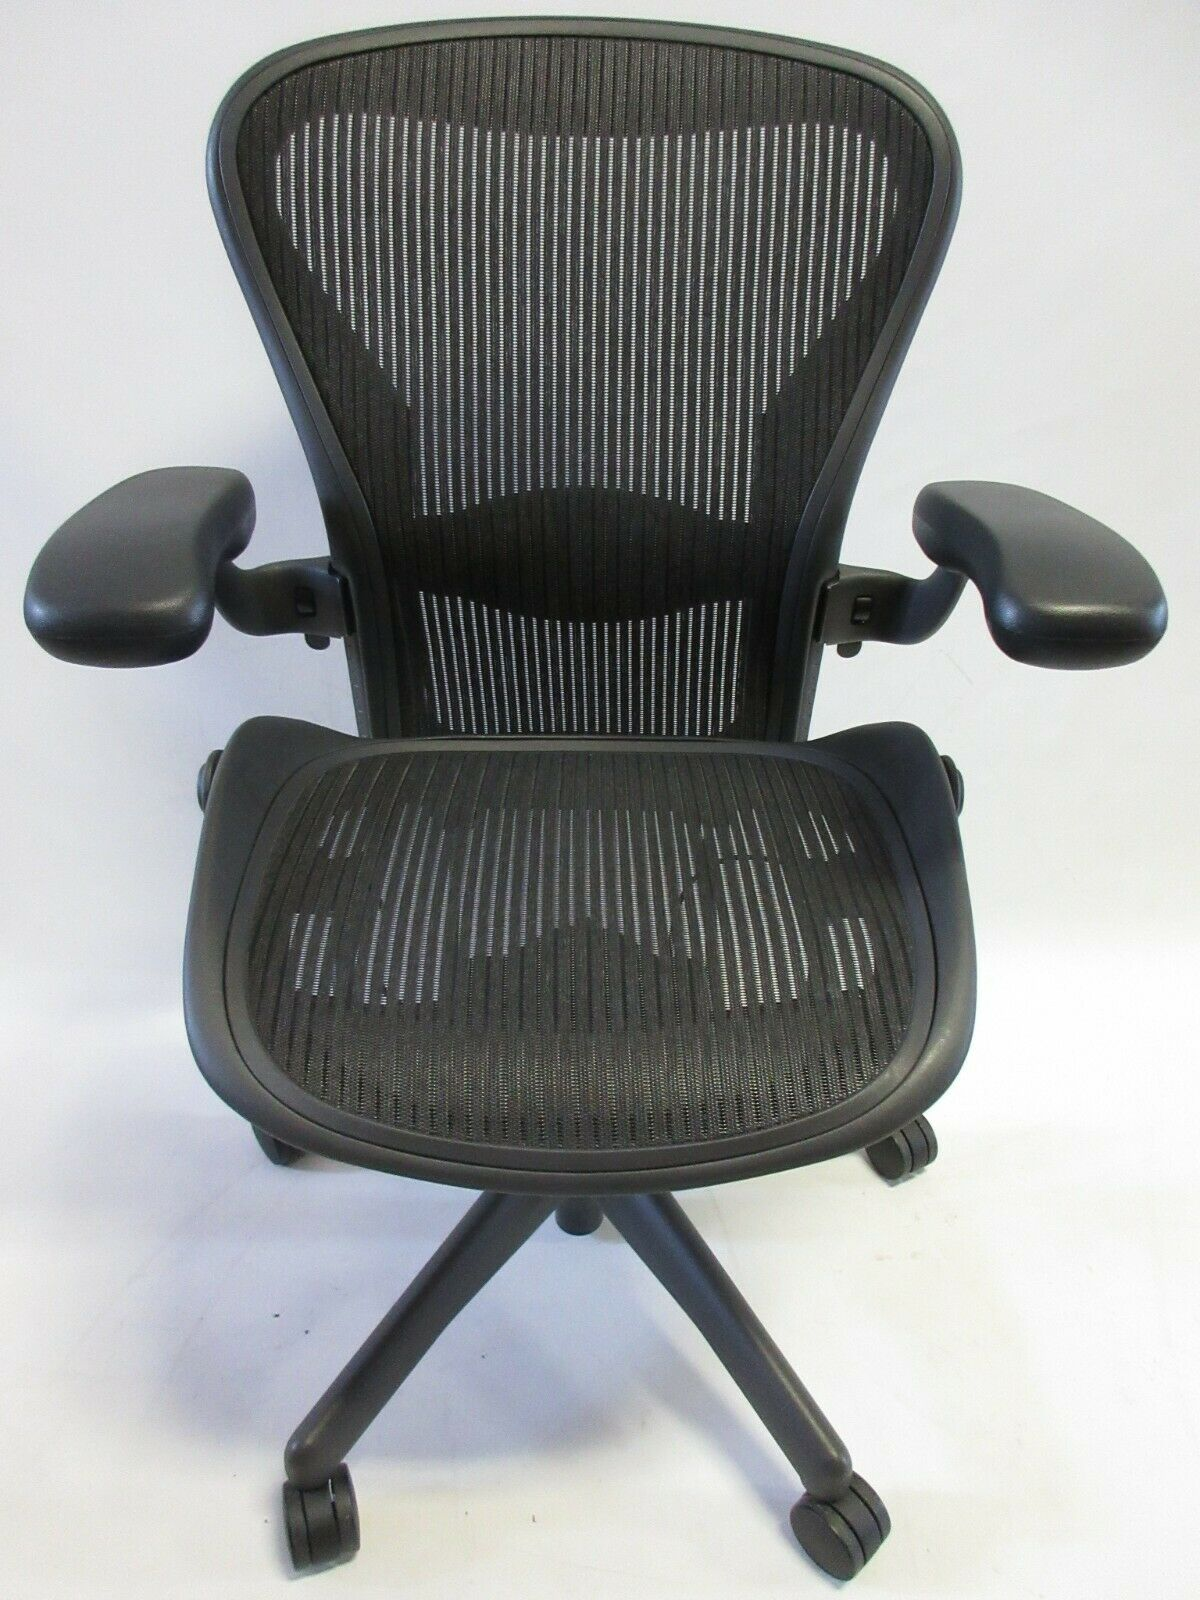 Herman Miller Aeron Chair - Size B in Excellent Condition